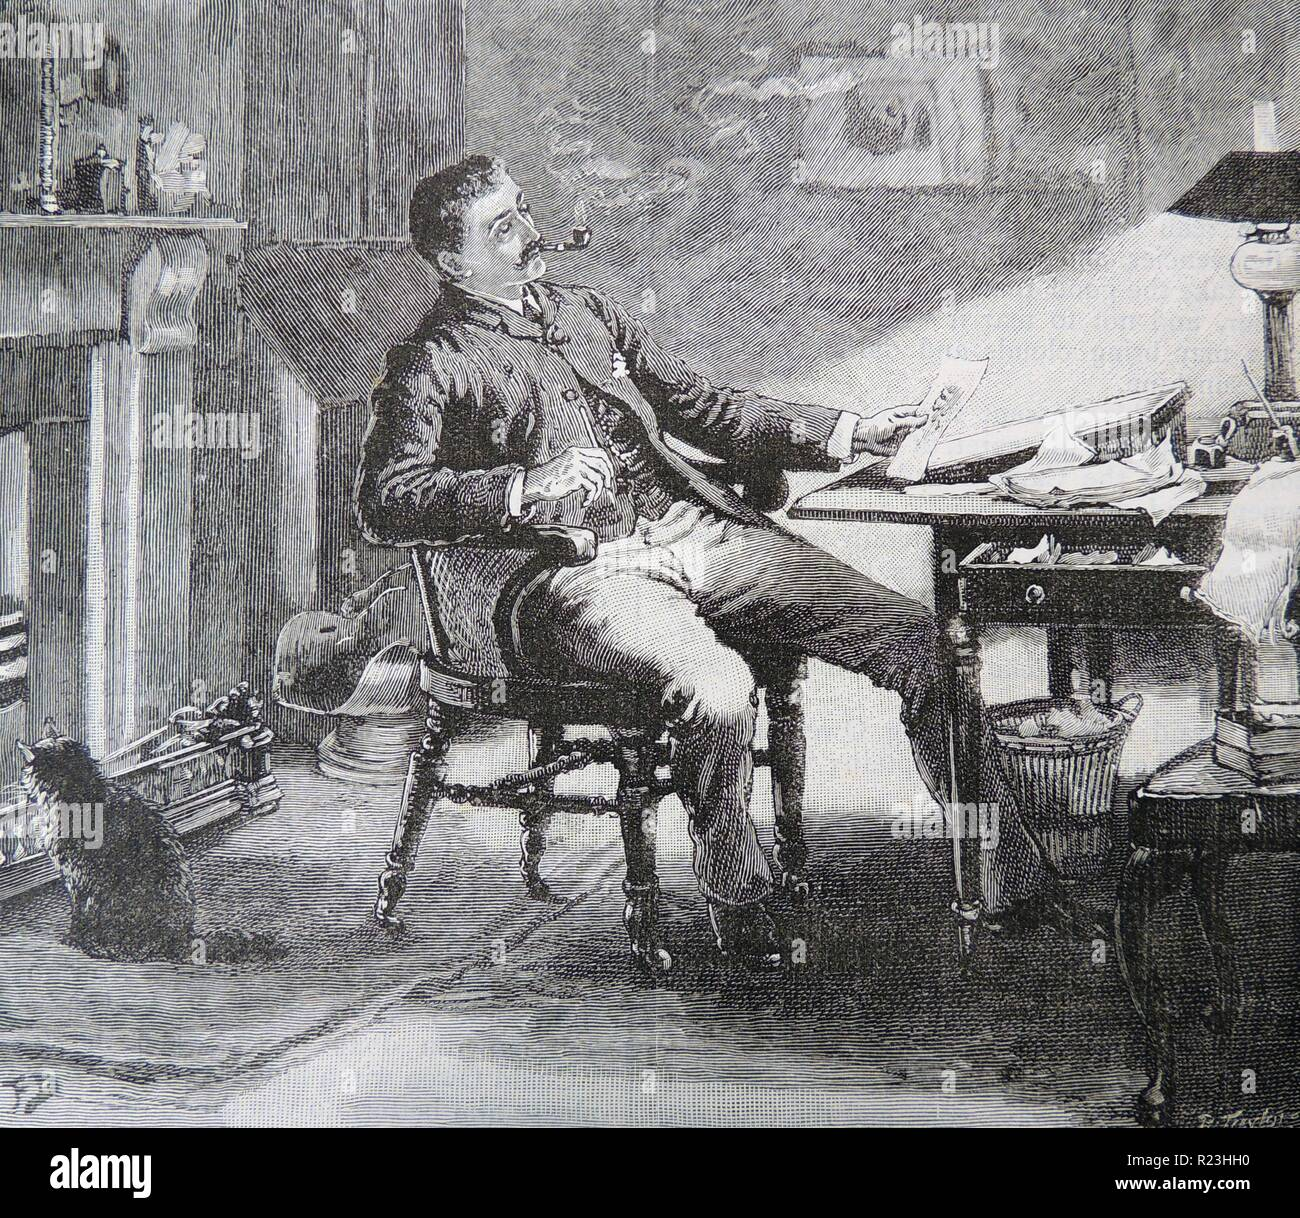 Man smoking a pipe as he sits at a table, his back to the fire, writing slope to his left. A pet cat sits on the hearthrug enjoying the warmth of the fire. Magazine illustration by Frank Dadd (1851-1929), London, 1890. - Stock Image